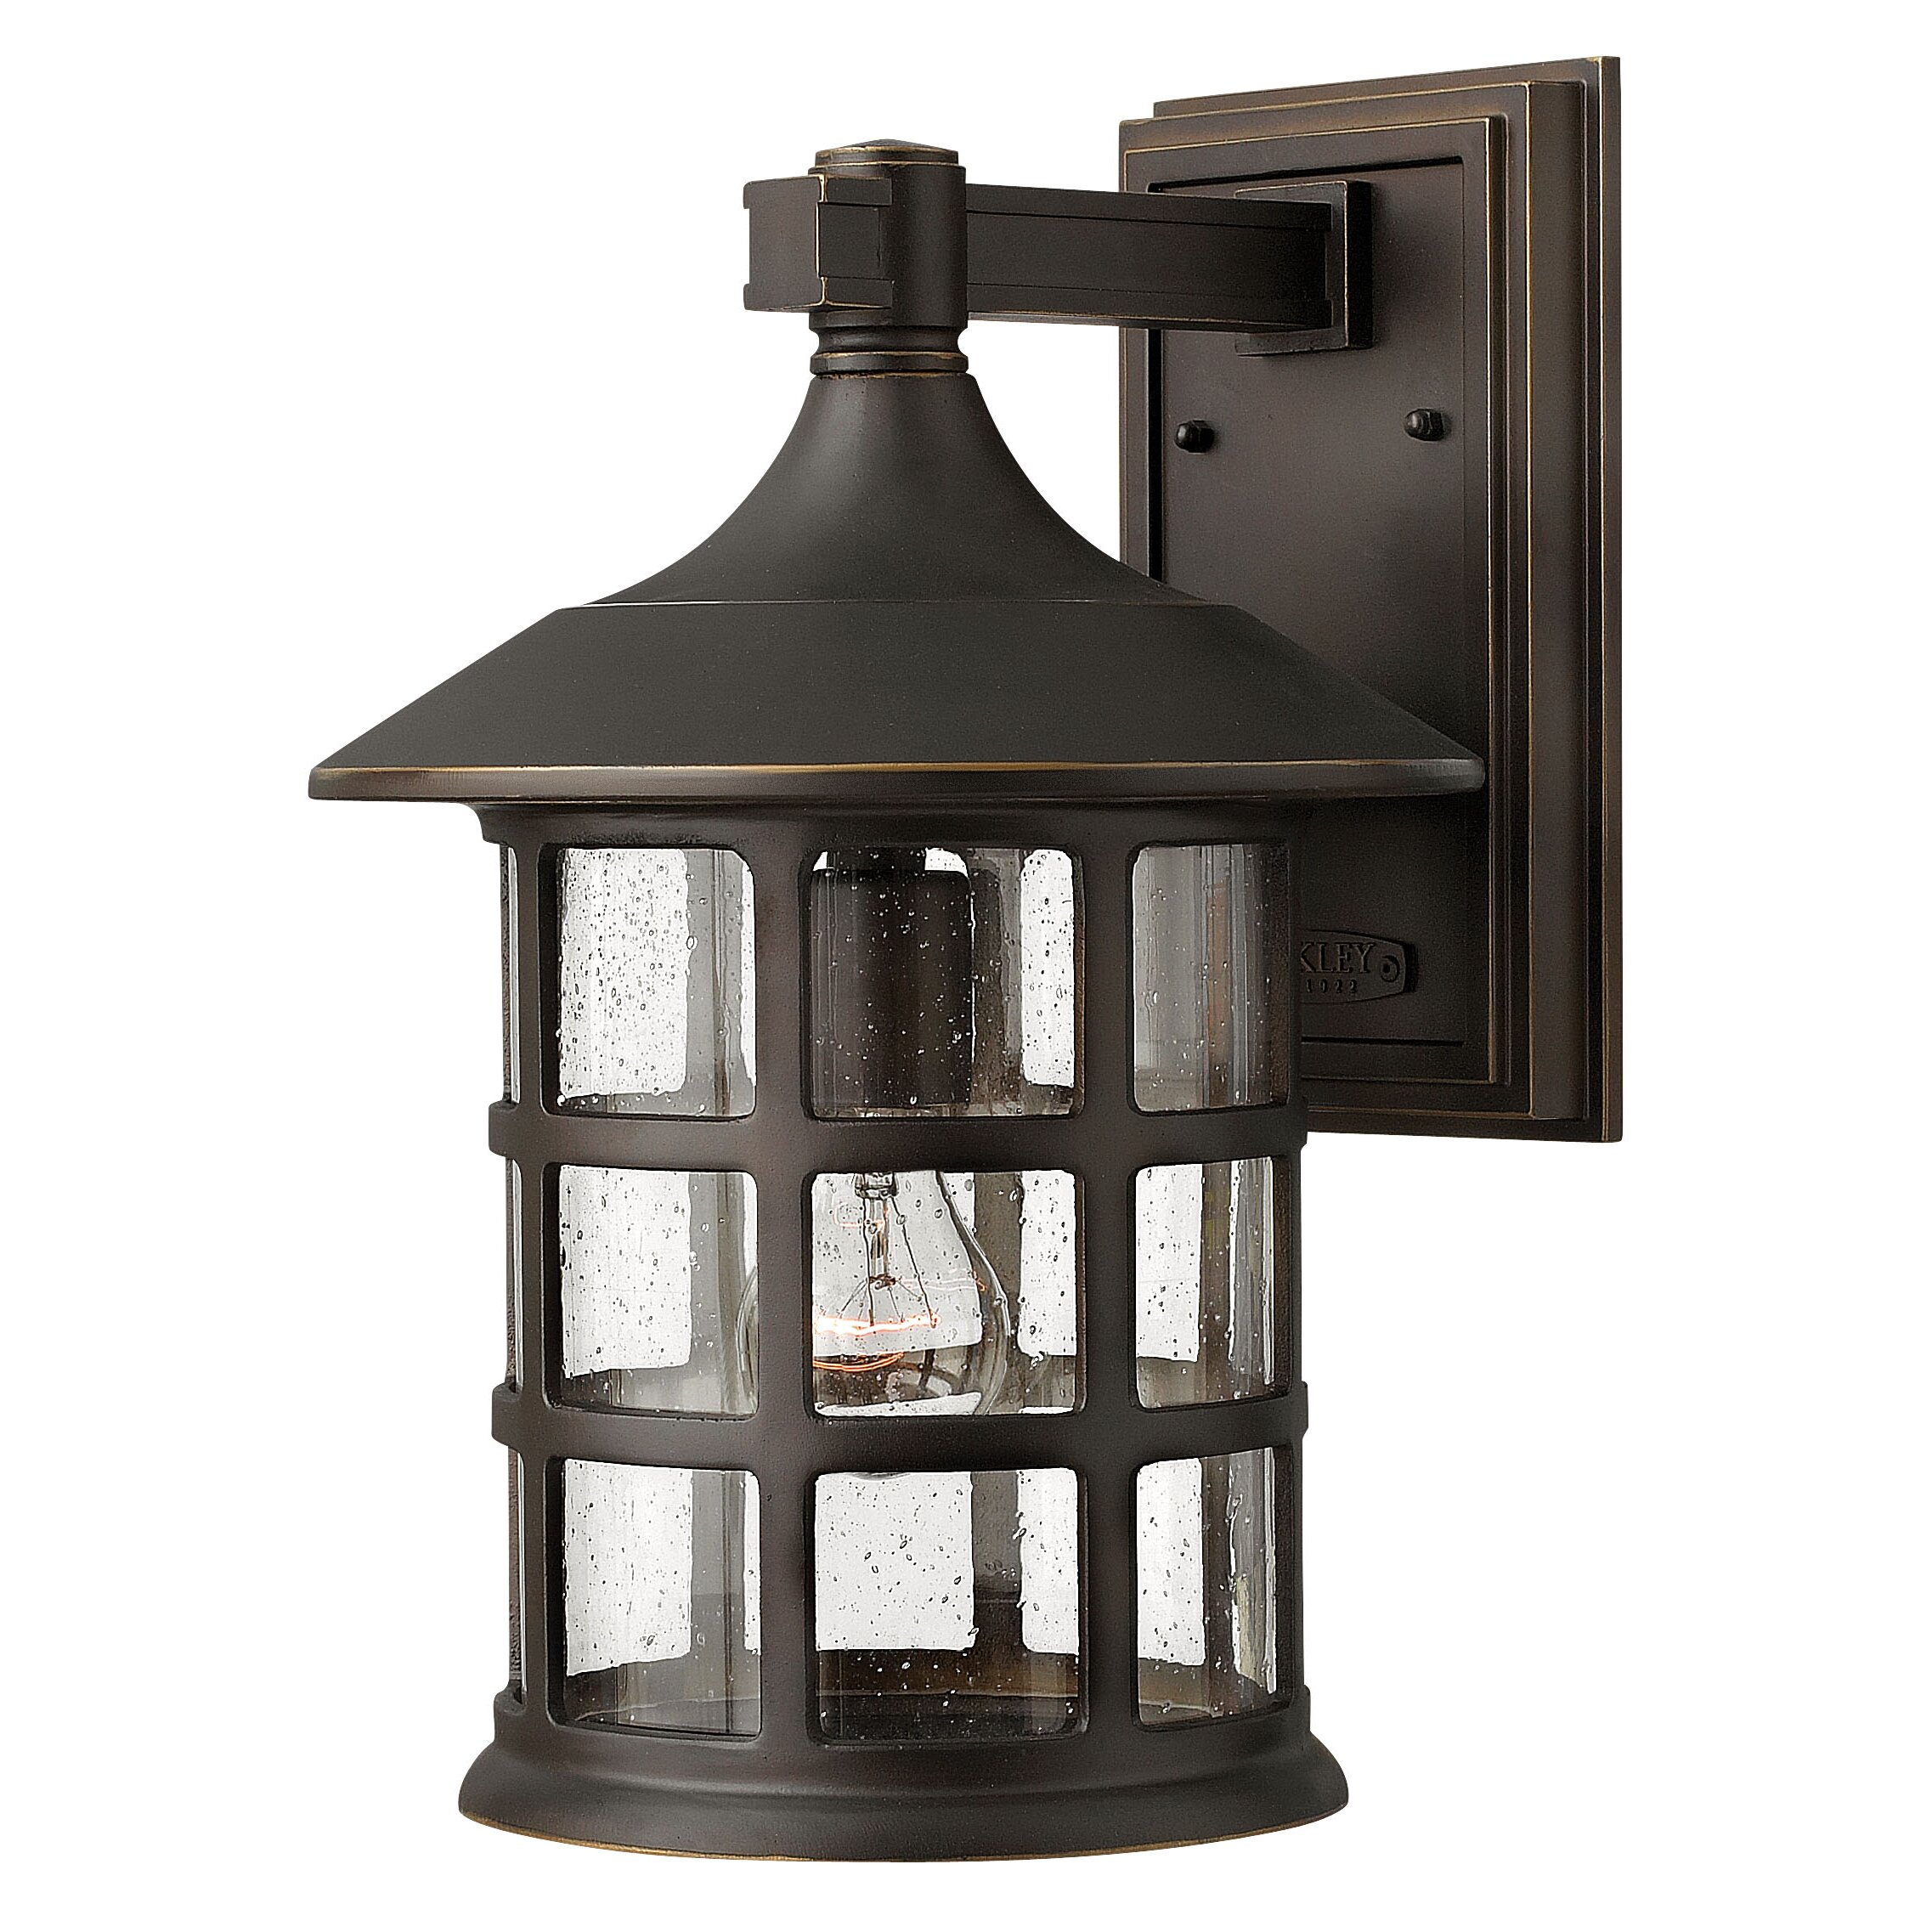 Outdoor Wall Lights Types: Hinkley Lighting Freeport 1 Light Outdoor Wall Lantern